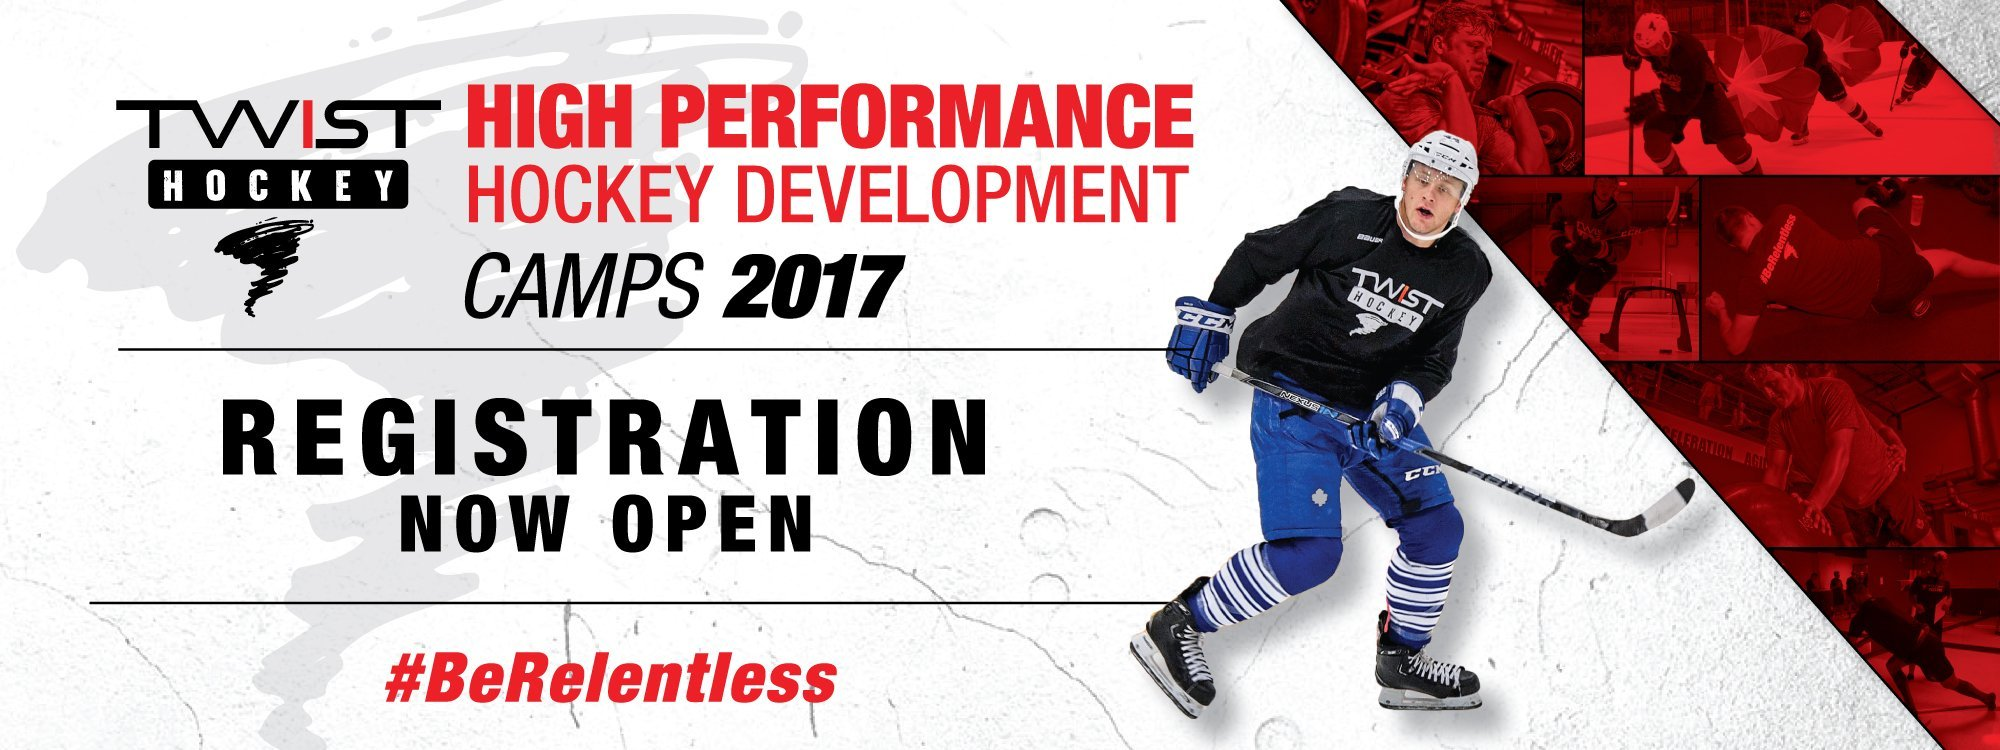 2017 Hockey Camps now open